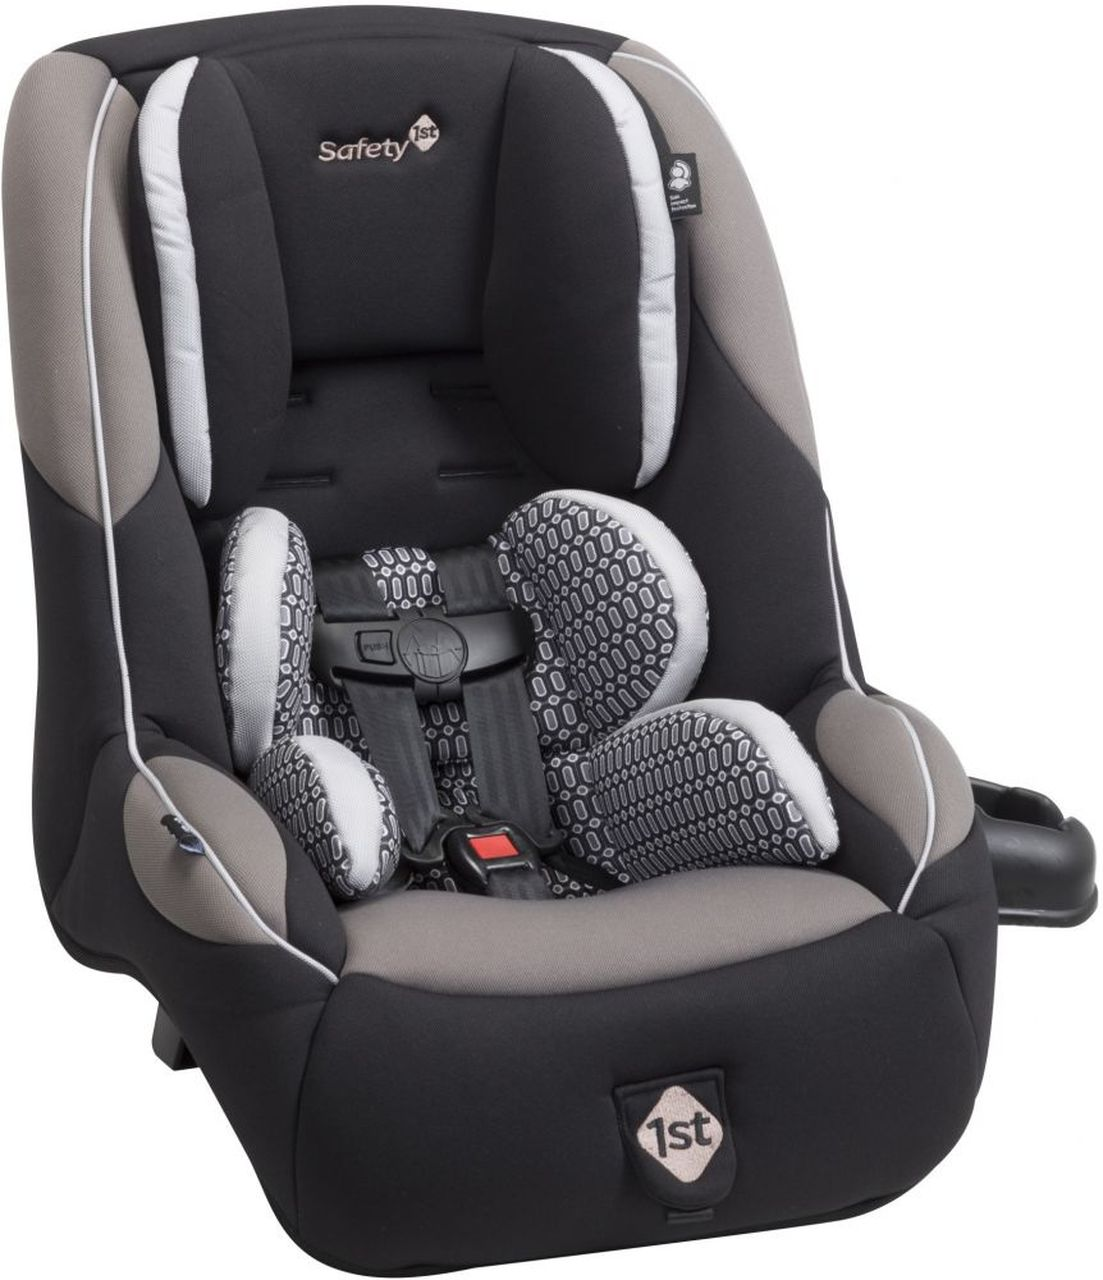 Safety 1st Guide 65 Convertible Car Seat FAA APPROVED